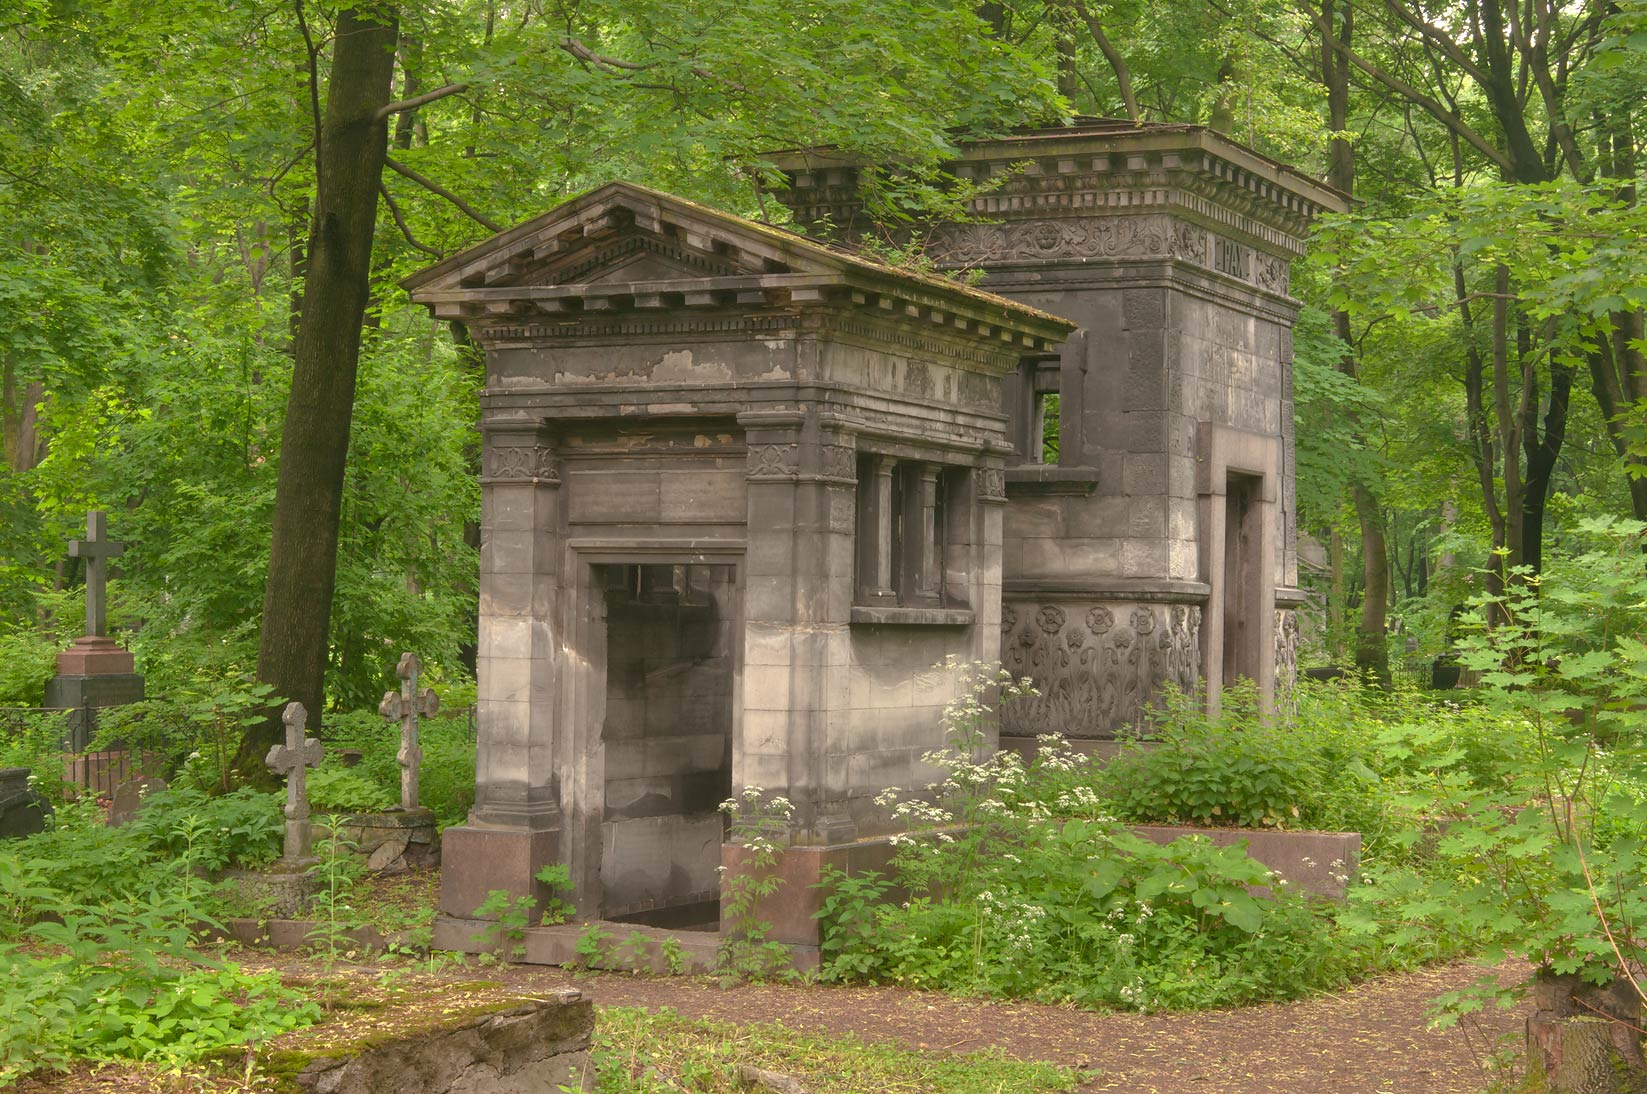 Photo 872-20: Stone mausoleum in Novodevichye Cemetery at Moskovskiy Prospekt...